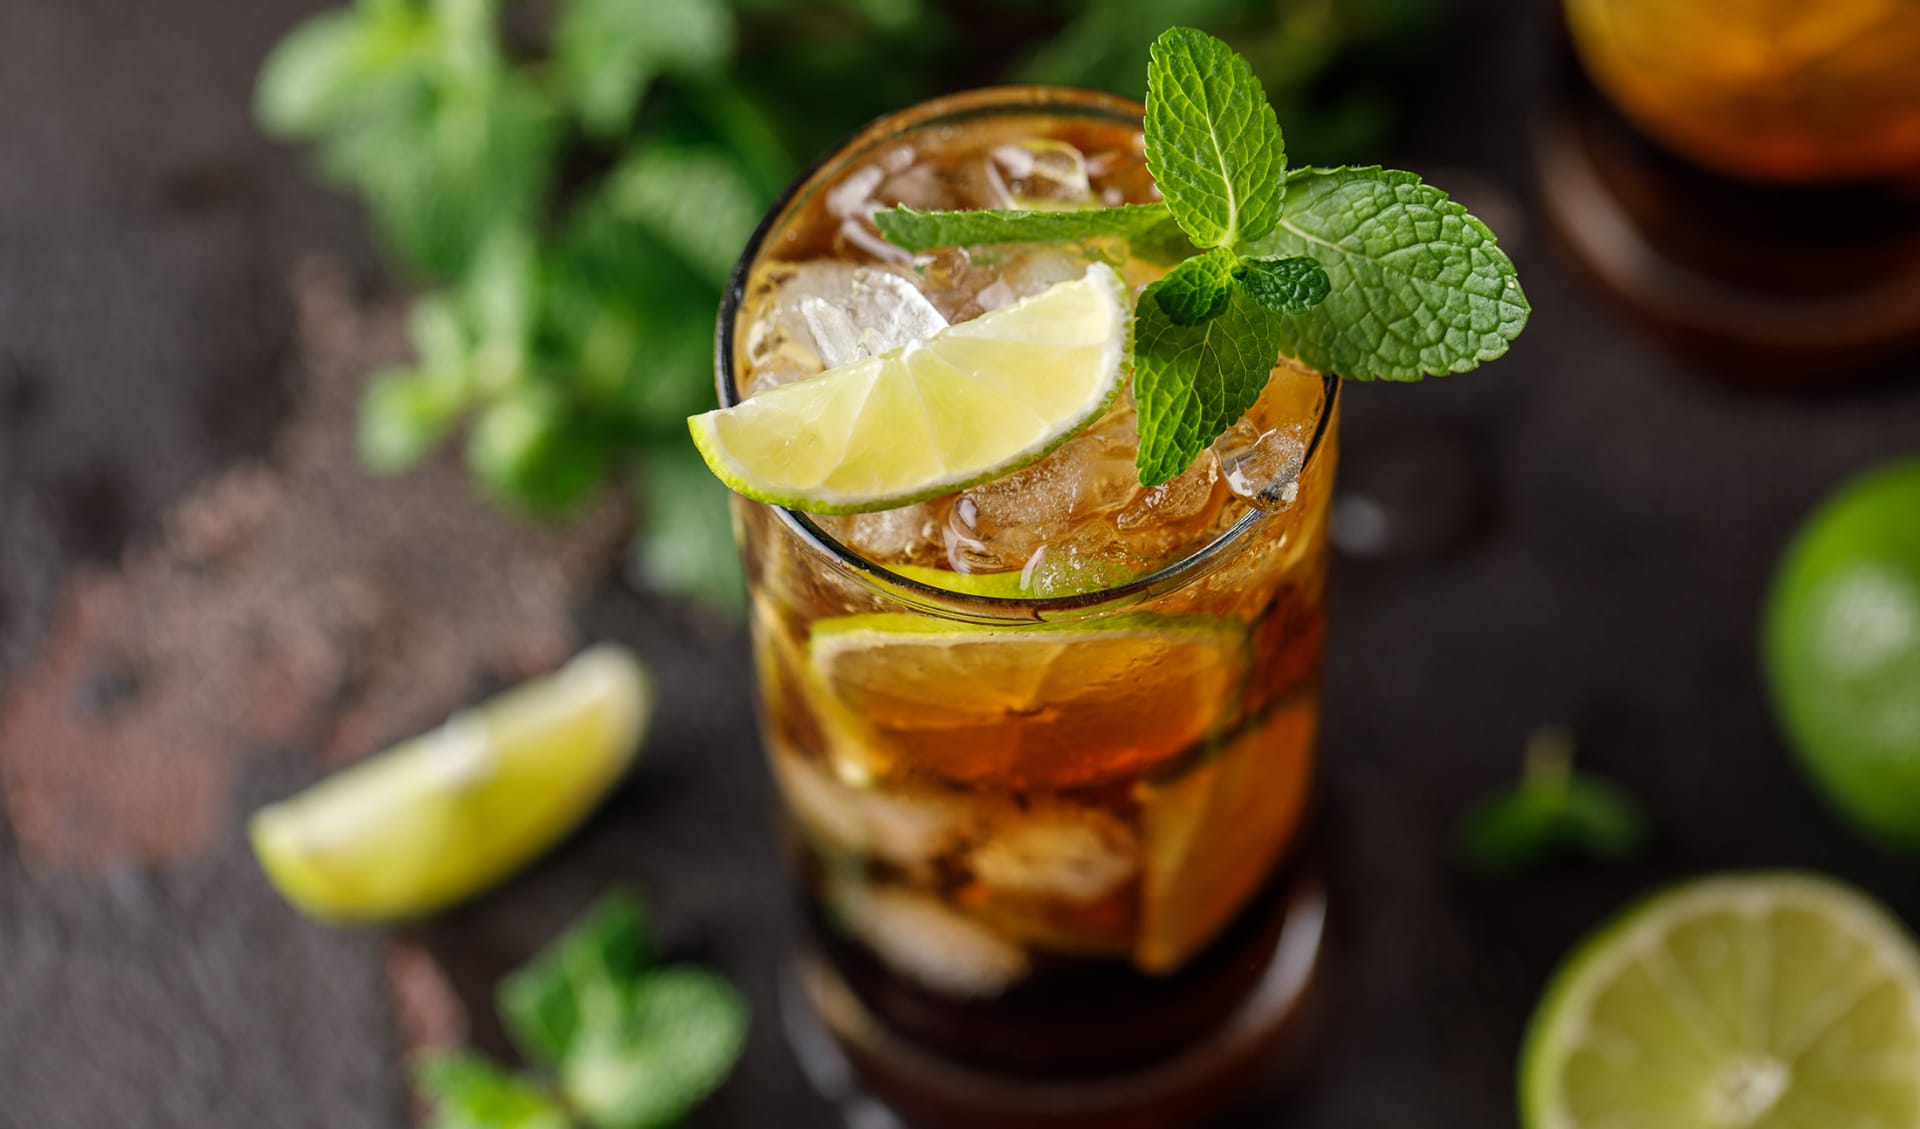 Cuba Libre with brown rum, cola, mint and lime.